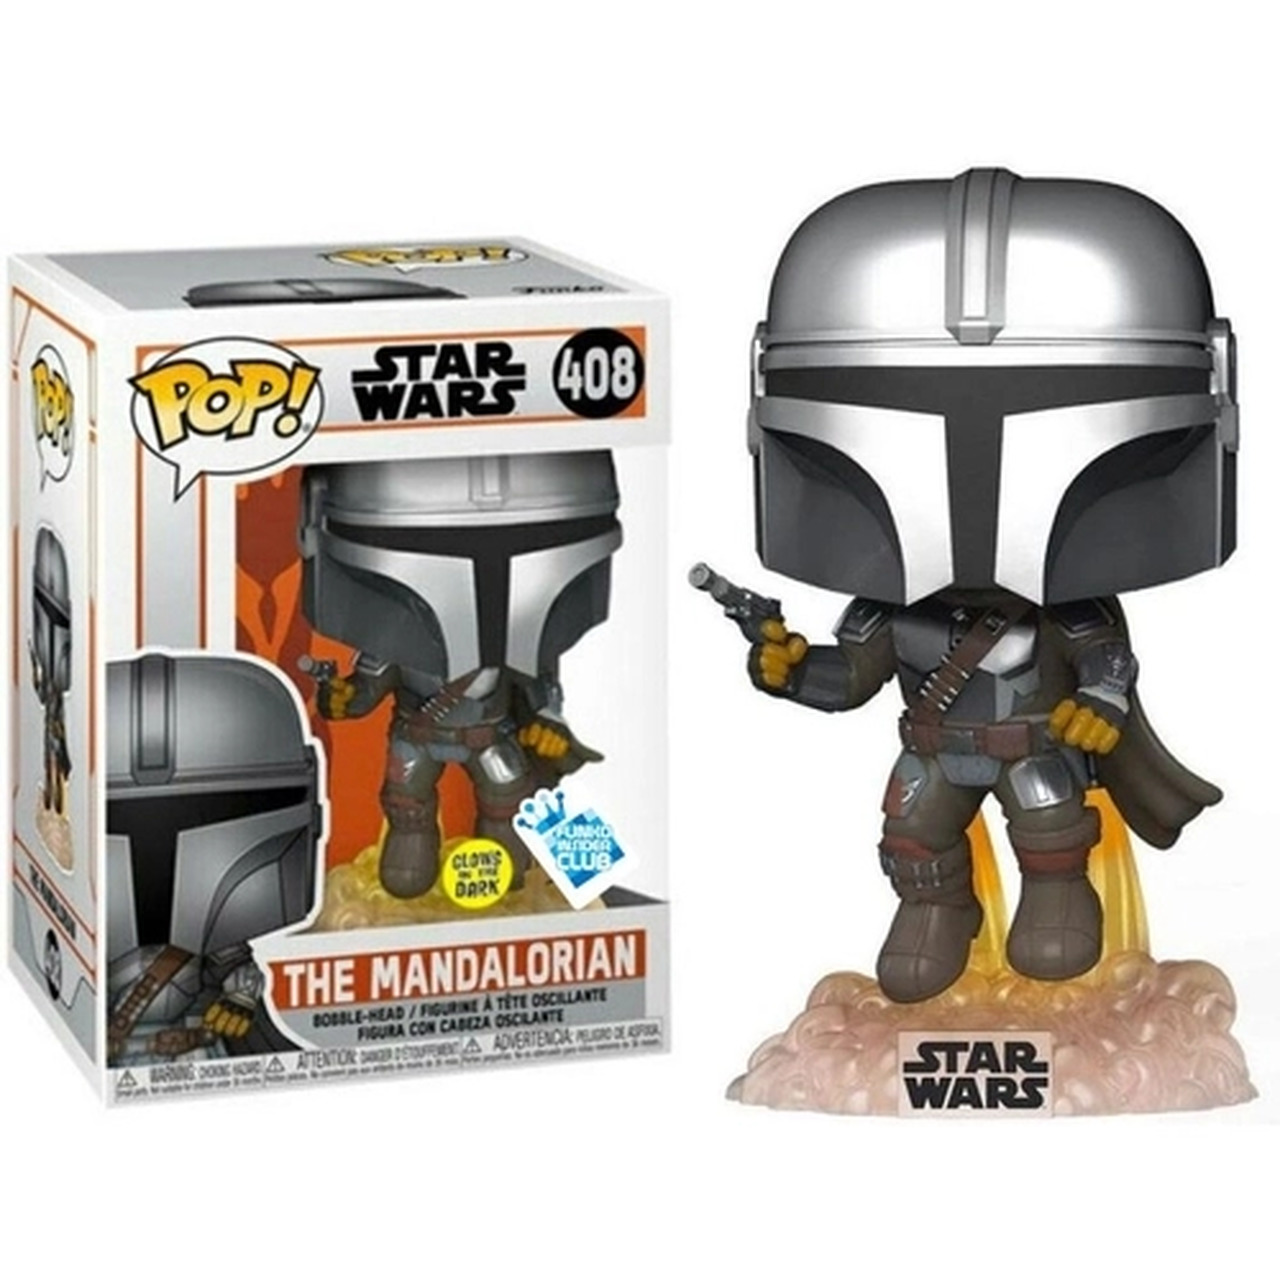 Funko Pop The Mandalorian Flyng With Blaster (Glows In The Dark): The Mandalorian #408 - Funko